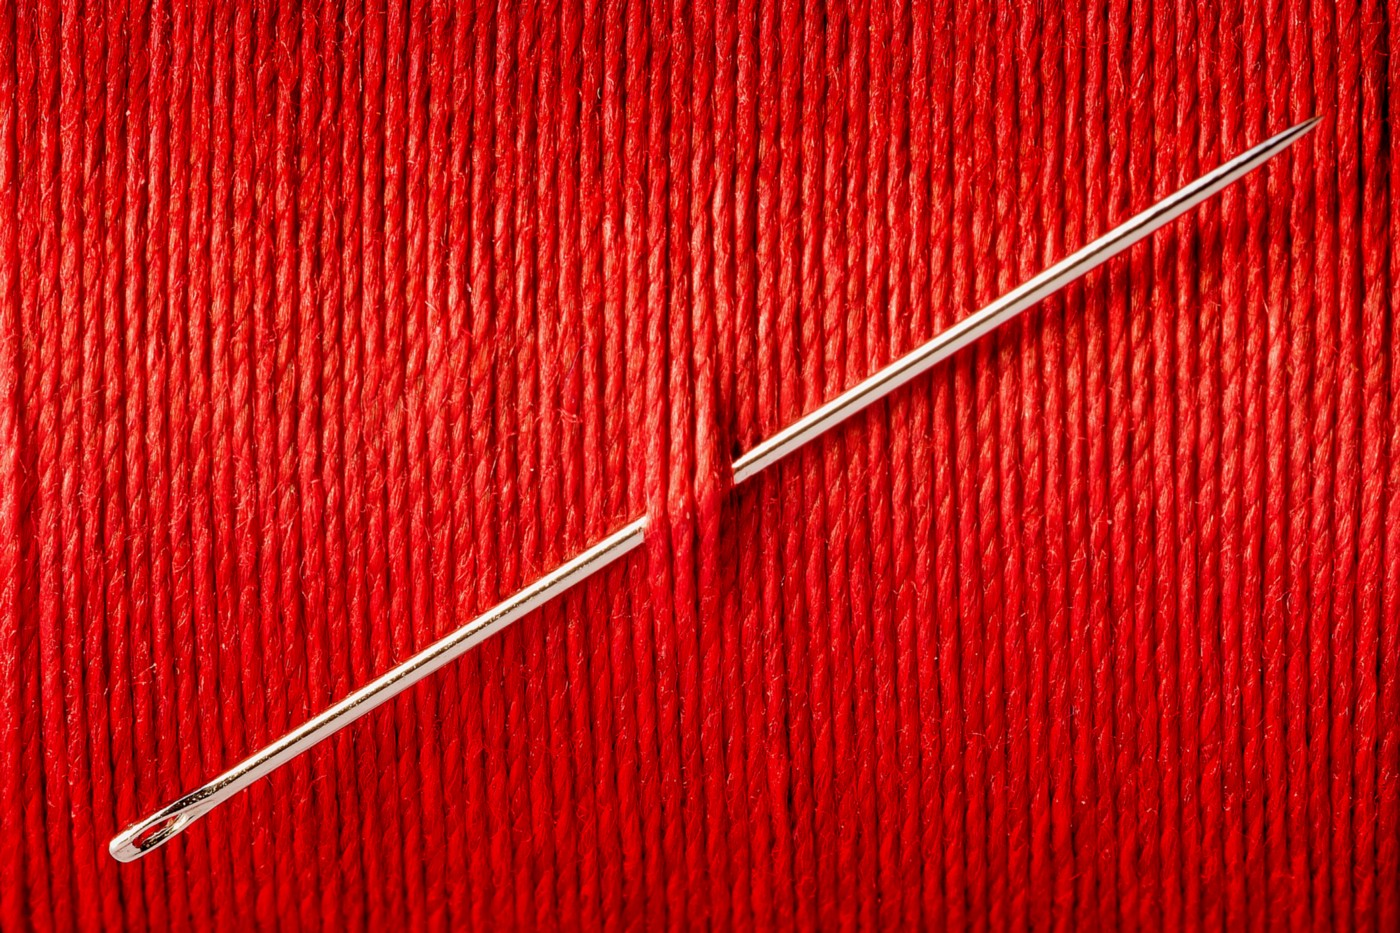 A needle stuck through a wall of red thread.